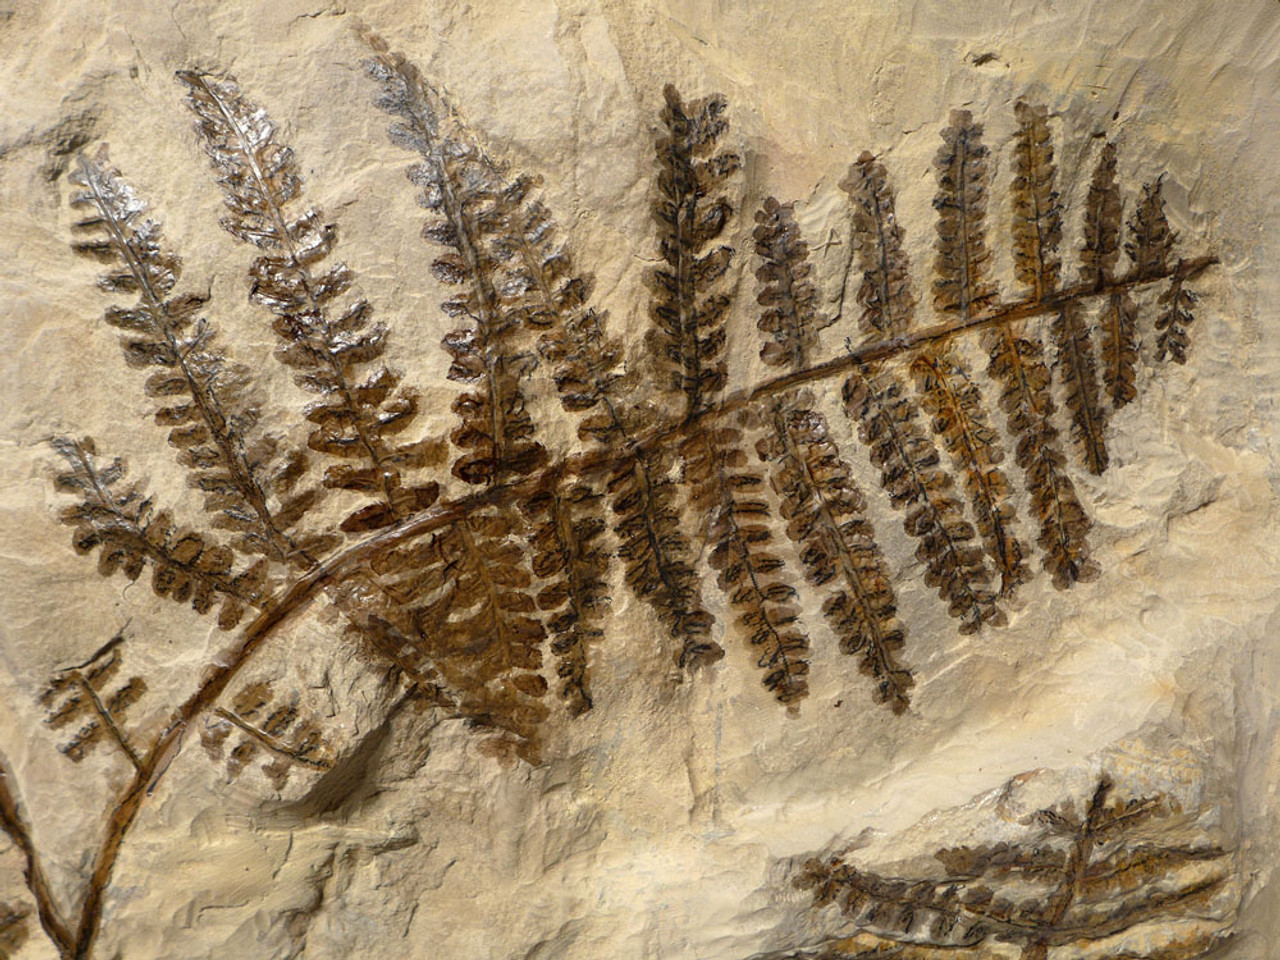 PLXX001 - LARGE, MUSEUM-CLASS RARE COMPLETE PREHISTORIC GIANT TREE FERN BRANCH WITH ALL FRONDS INTACT FROM THE PERMIAN PERIOD